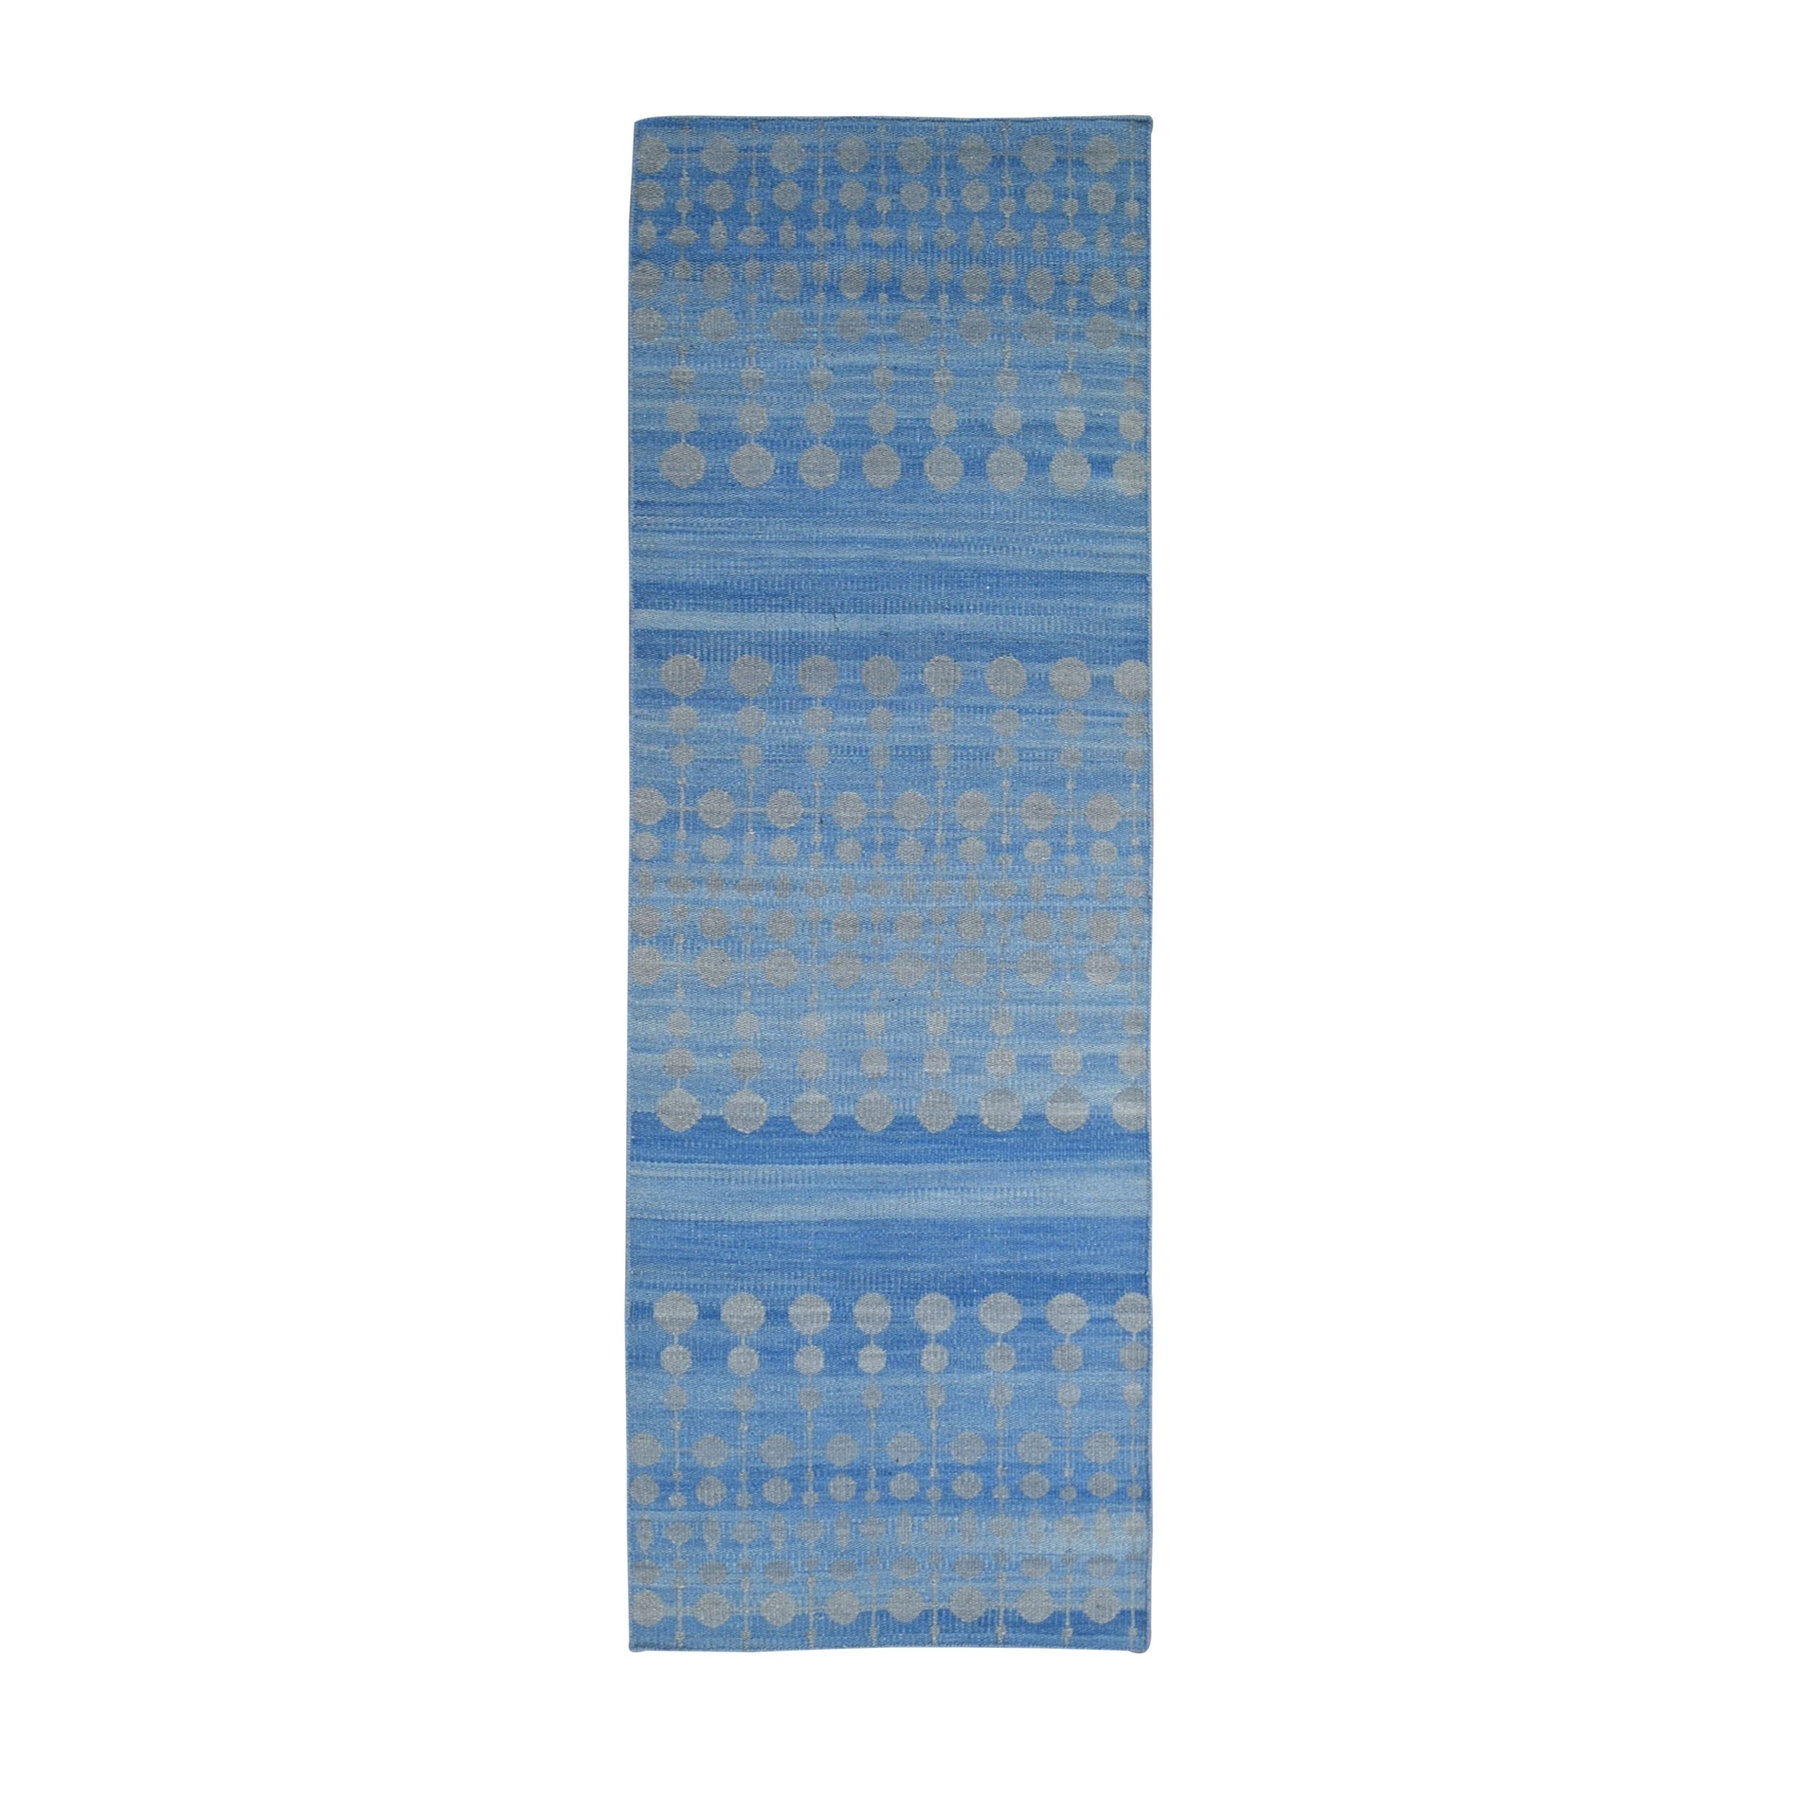 "2'7""x9'9"" Light Blue Hand Woven Dot Design Flat Weave Pure Wool Reversible Kilim Runner Oriental Rug"